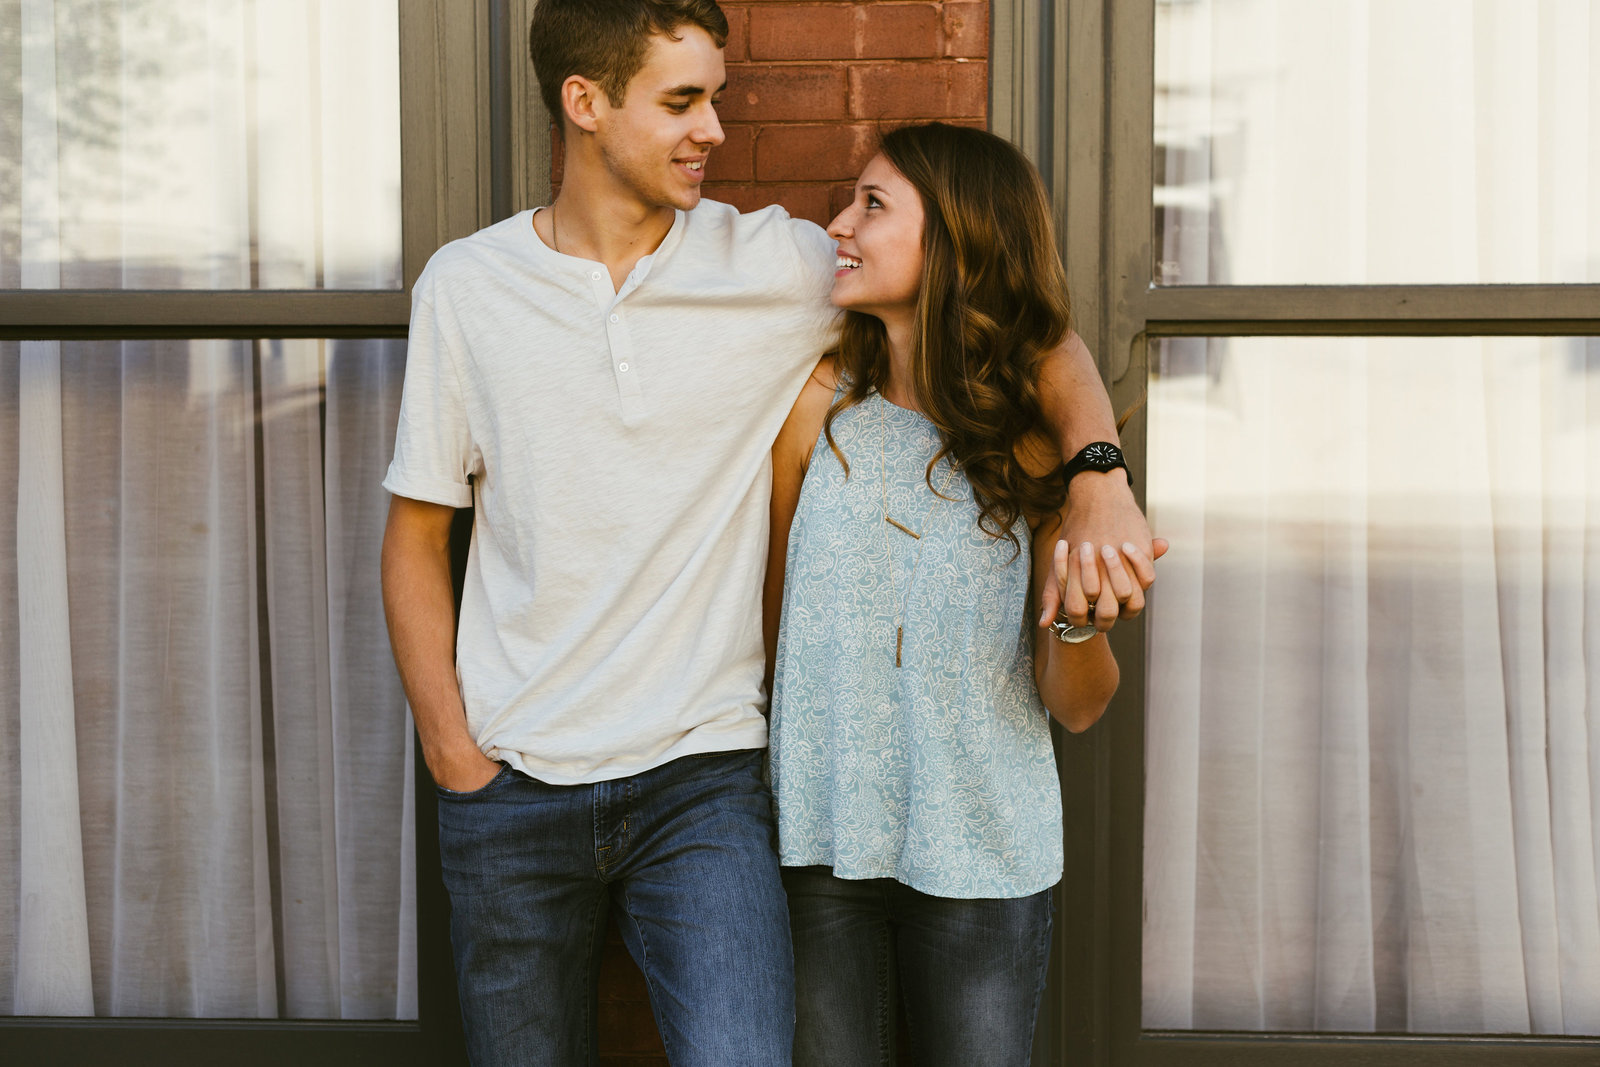 Heath-HannahRuth-Engagement-Shoot-SaraLane-And-Stevie-Wedding-Photographers-21b